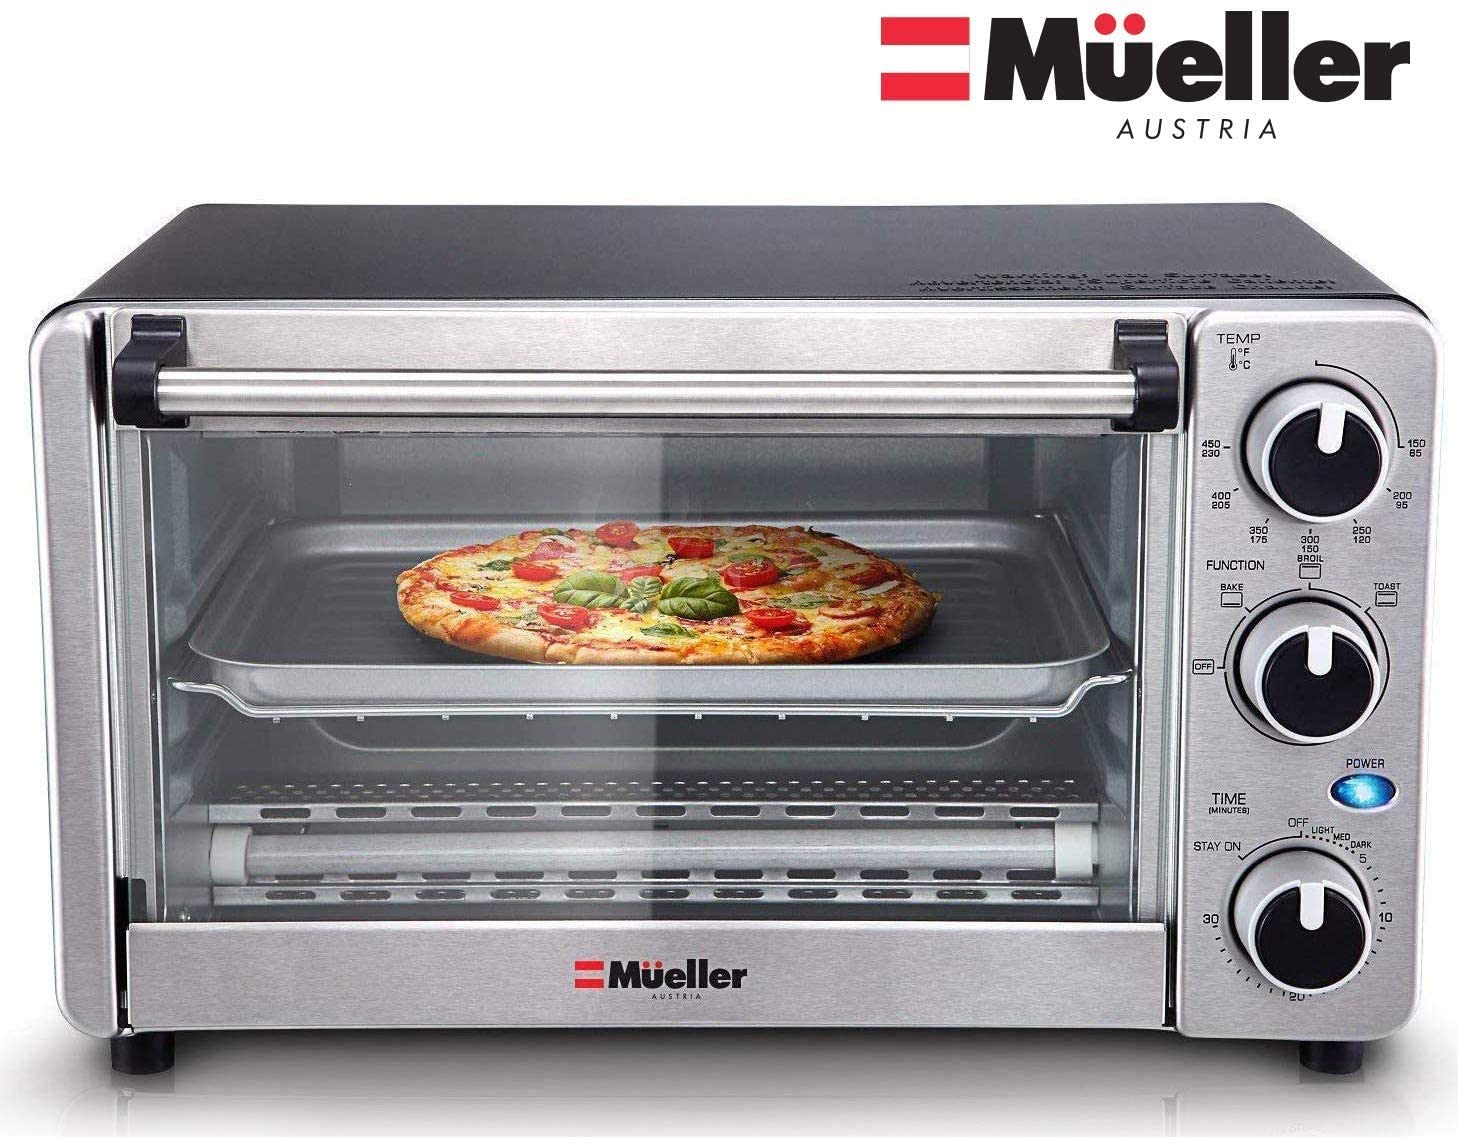 Toaster Oven by Mueller Austria